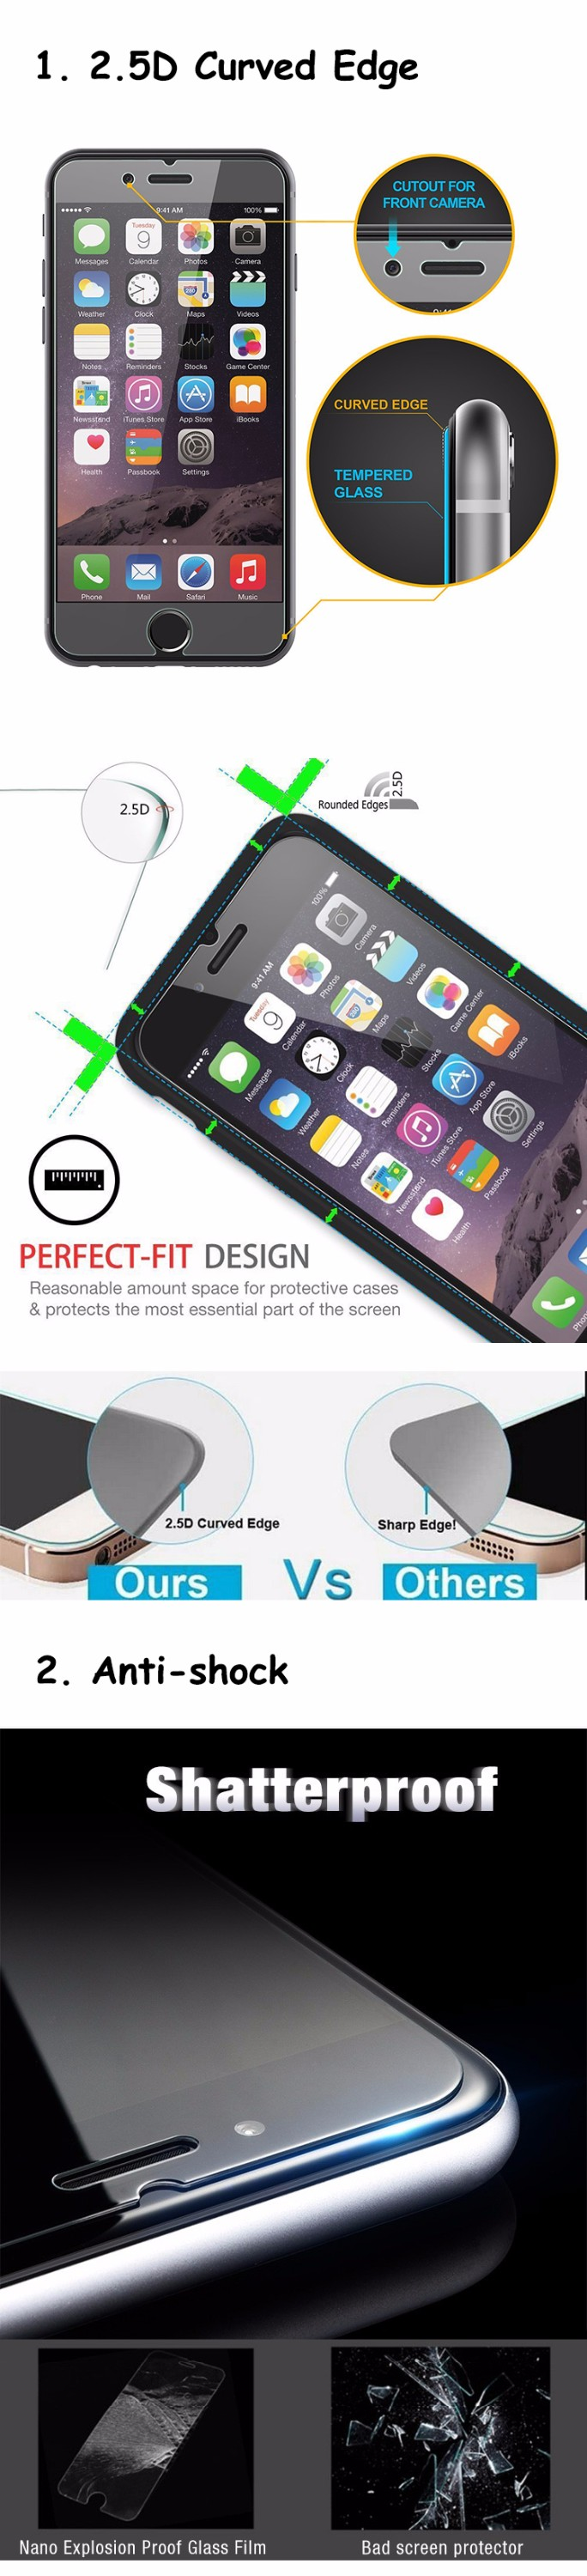 High quality anti shock anti fingerprint anti friction screen saver for iphone 7 protector